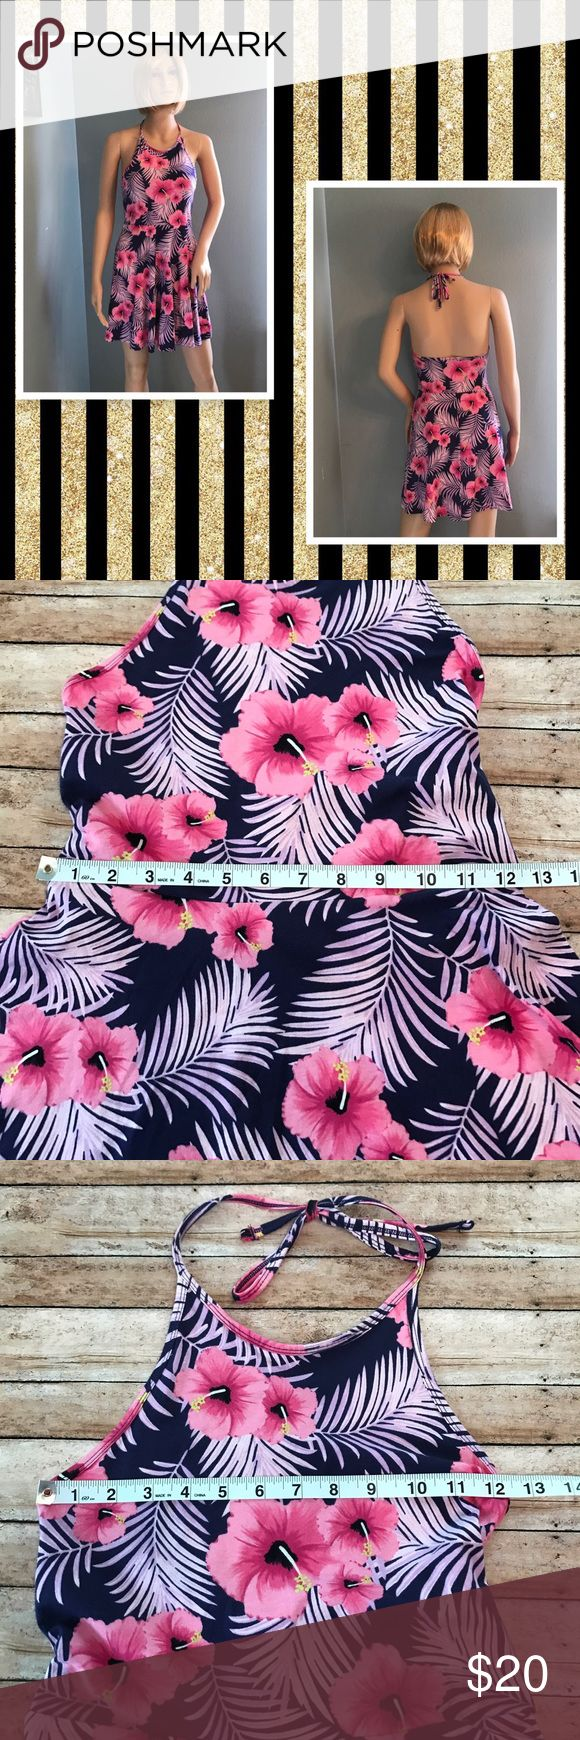 VS PINK Halter Dress NWT!!! Beautiful pink flowers and dark purple background. 94% cotton/6% elastane. Petite Small PINK Victoria's Secret Dresses